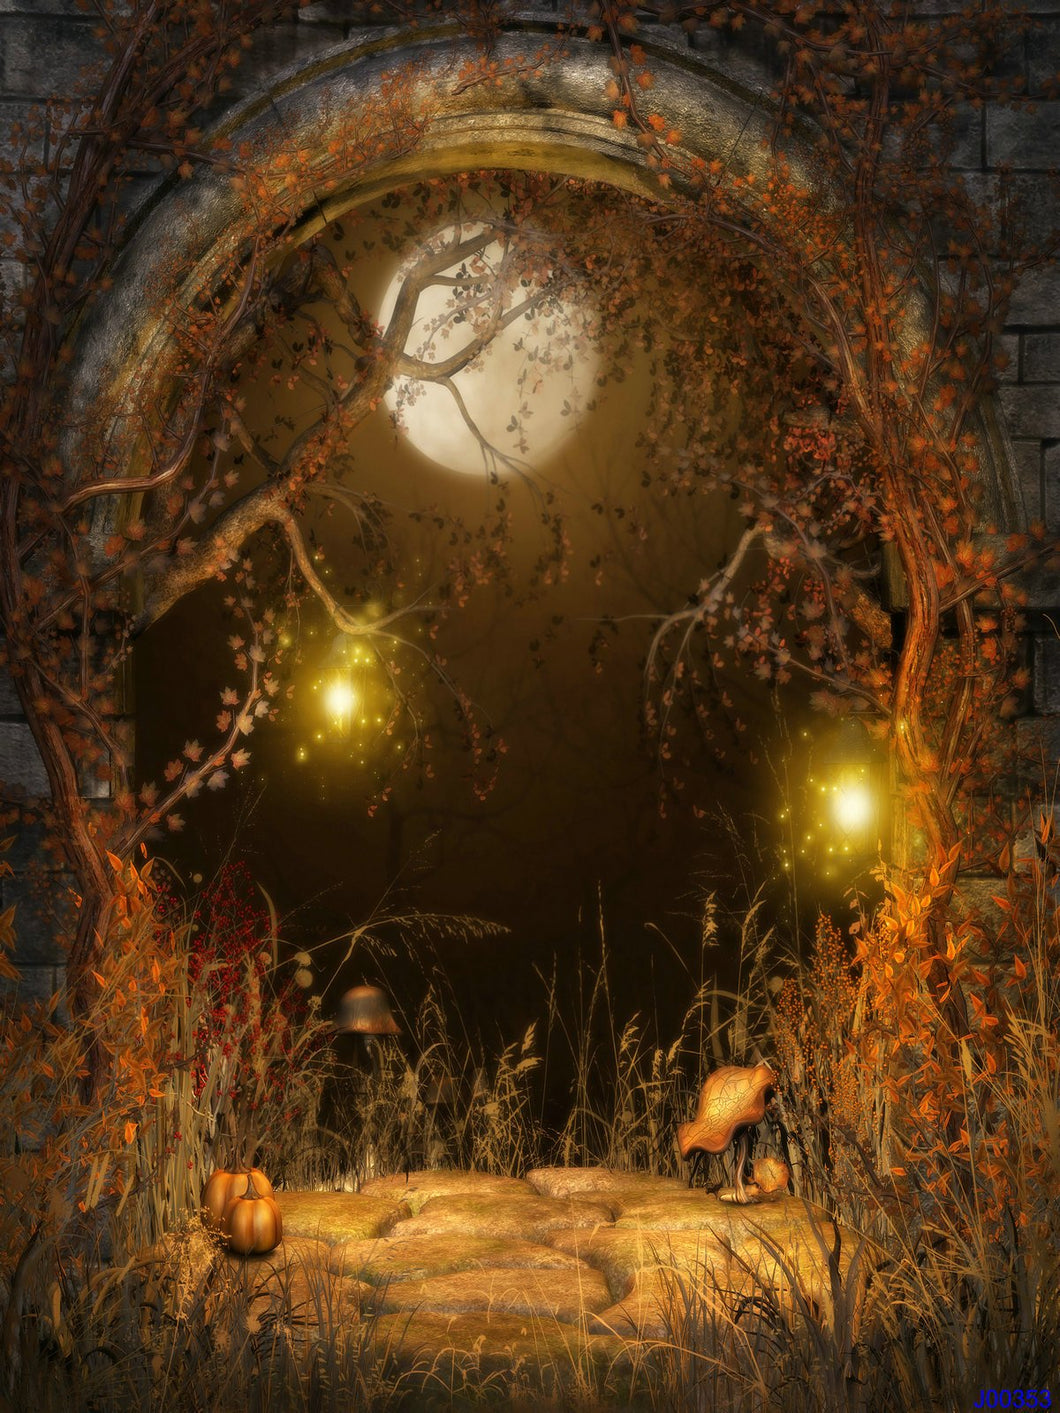 Katebackdrop£ºKate Halloween Photography Backdrop Vintage Forest Photo Background